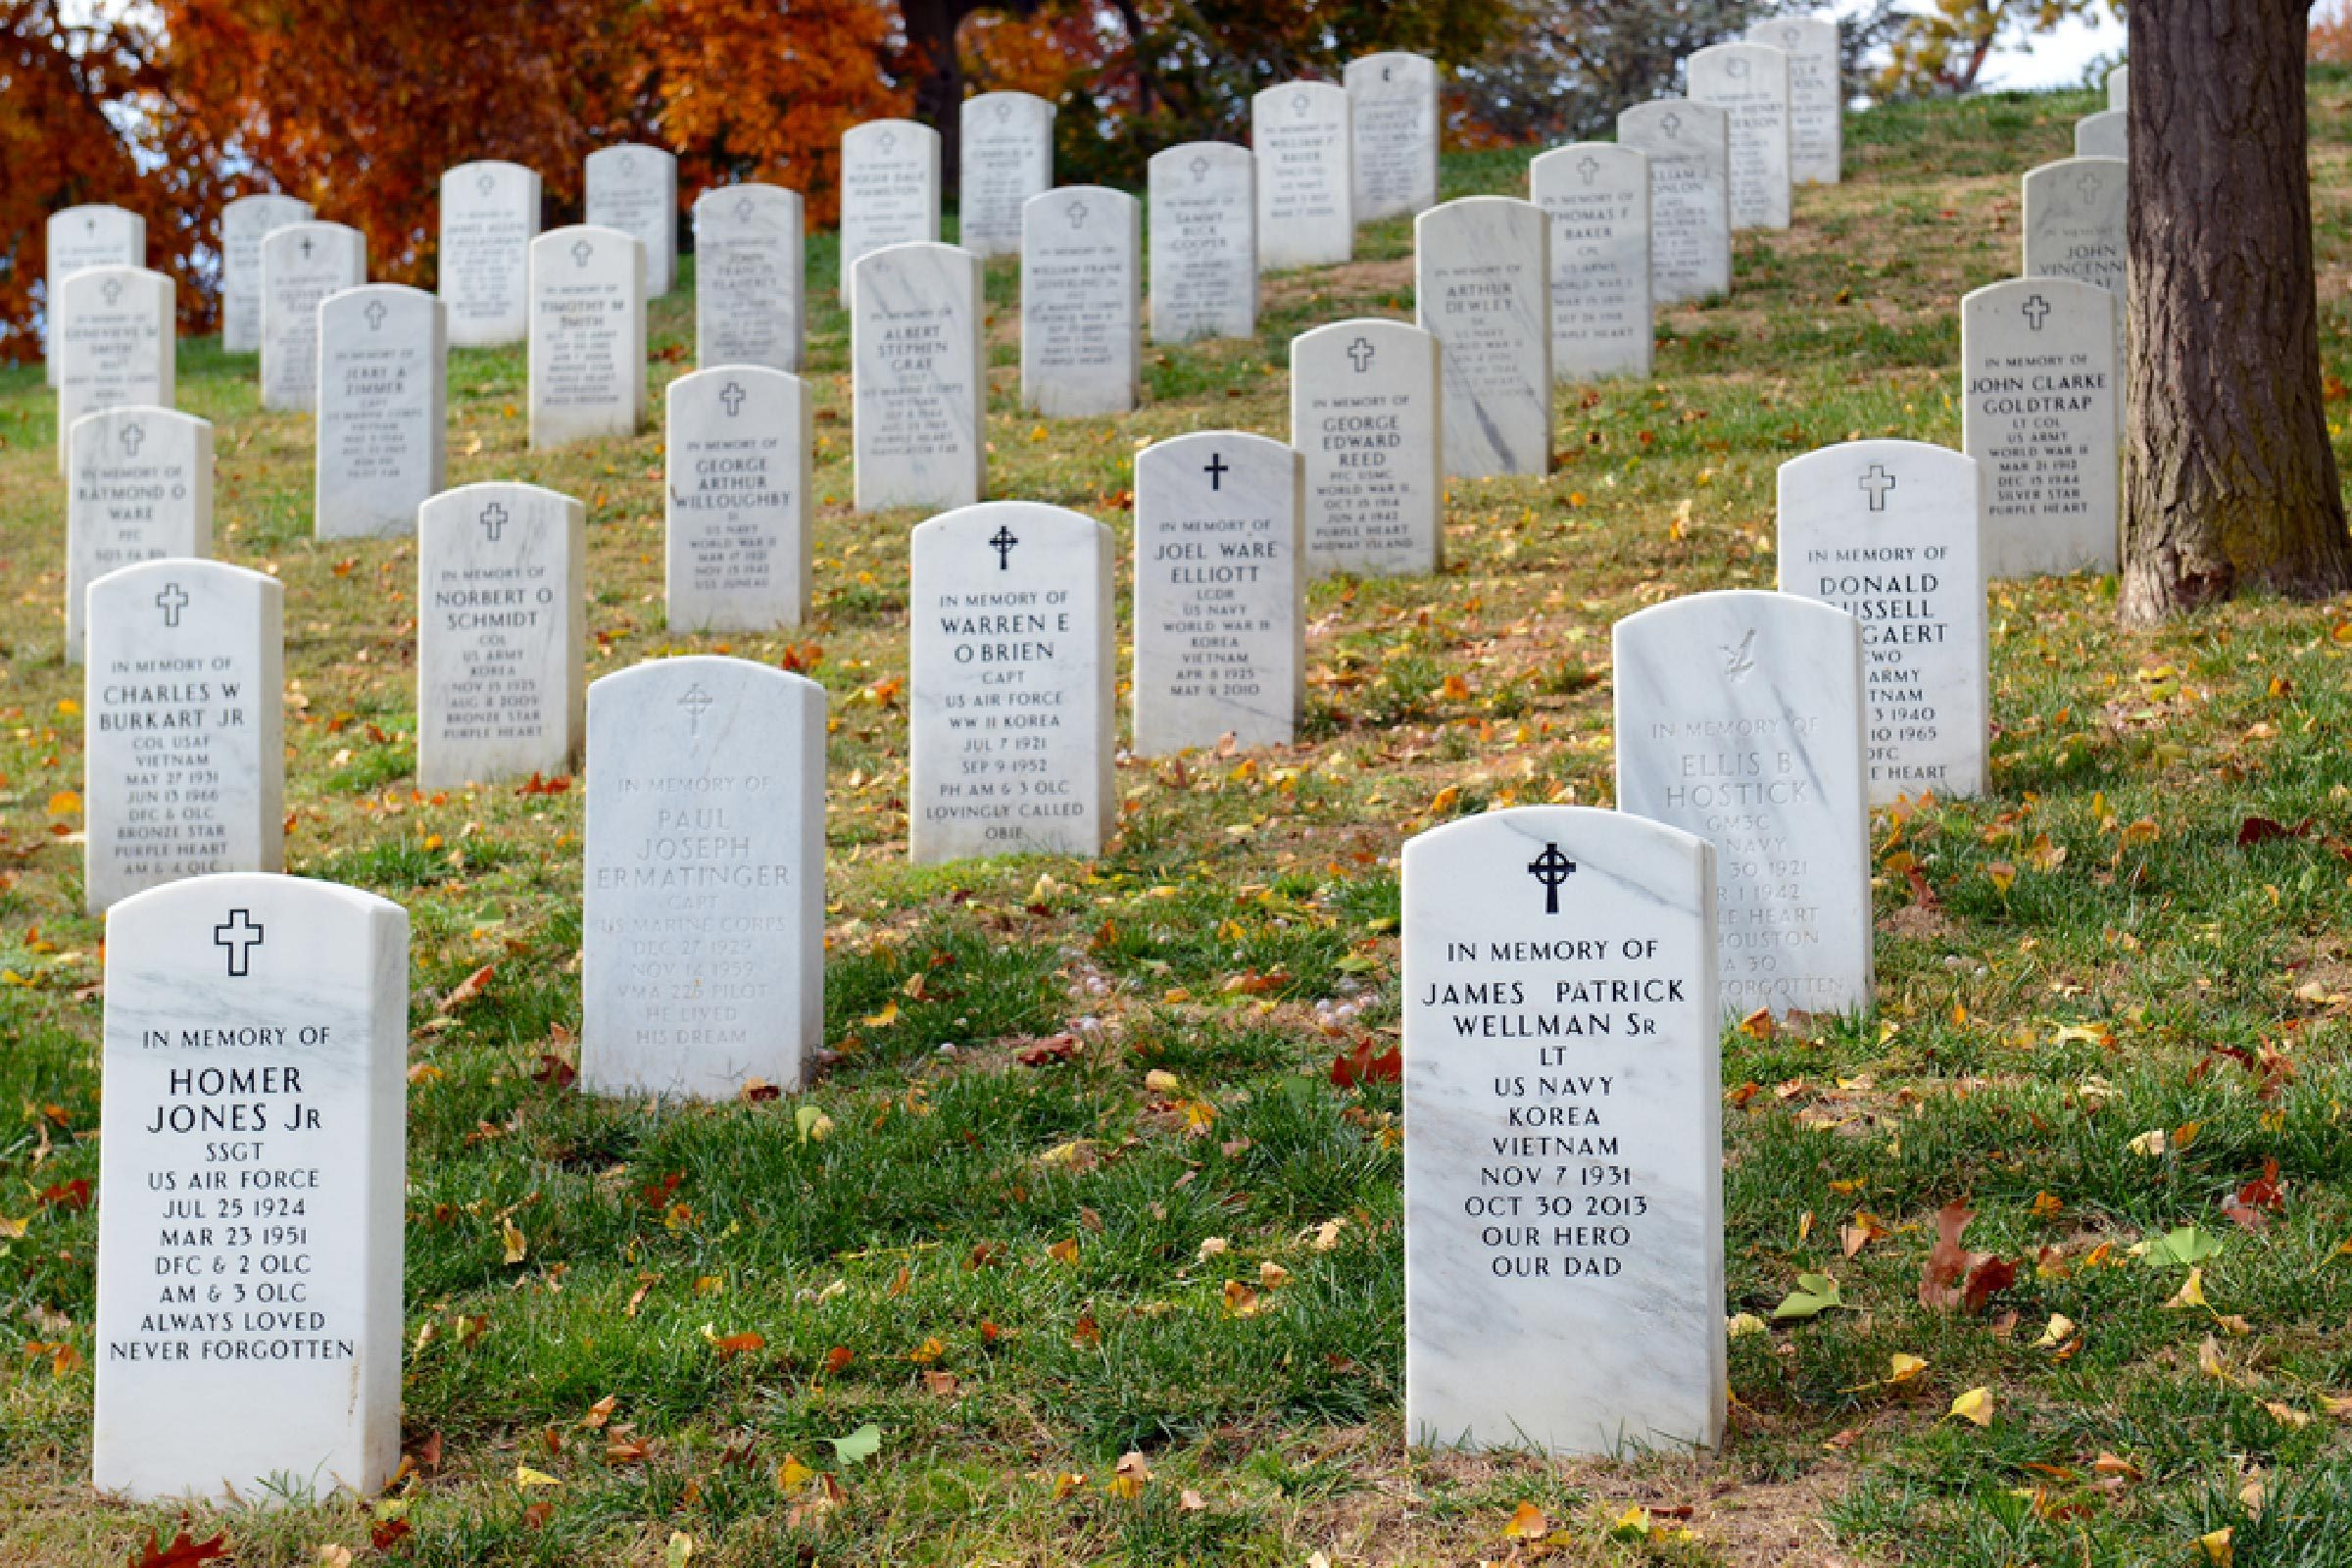 WASHINGTON DC NOVEMBER 11 2016. Tombstones at Arlington National Cemetery represent the courage and bravery of the soldiers that fought and gave their lives for the freedom that America enjoys today.